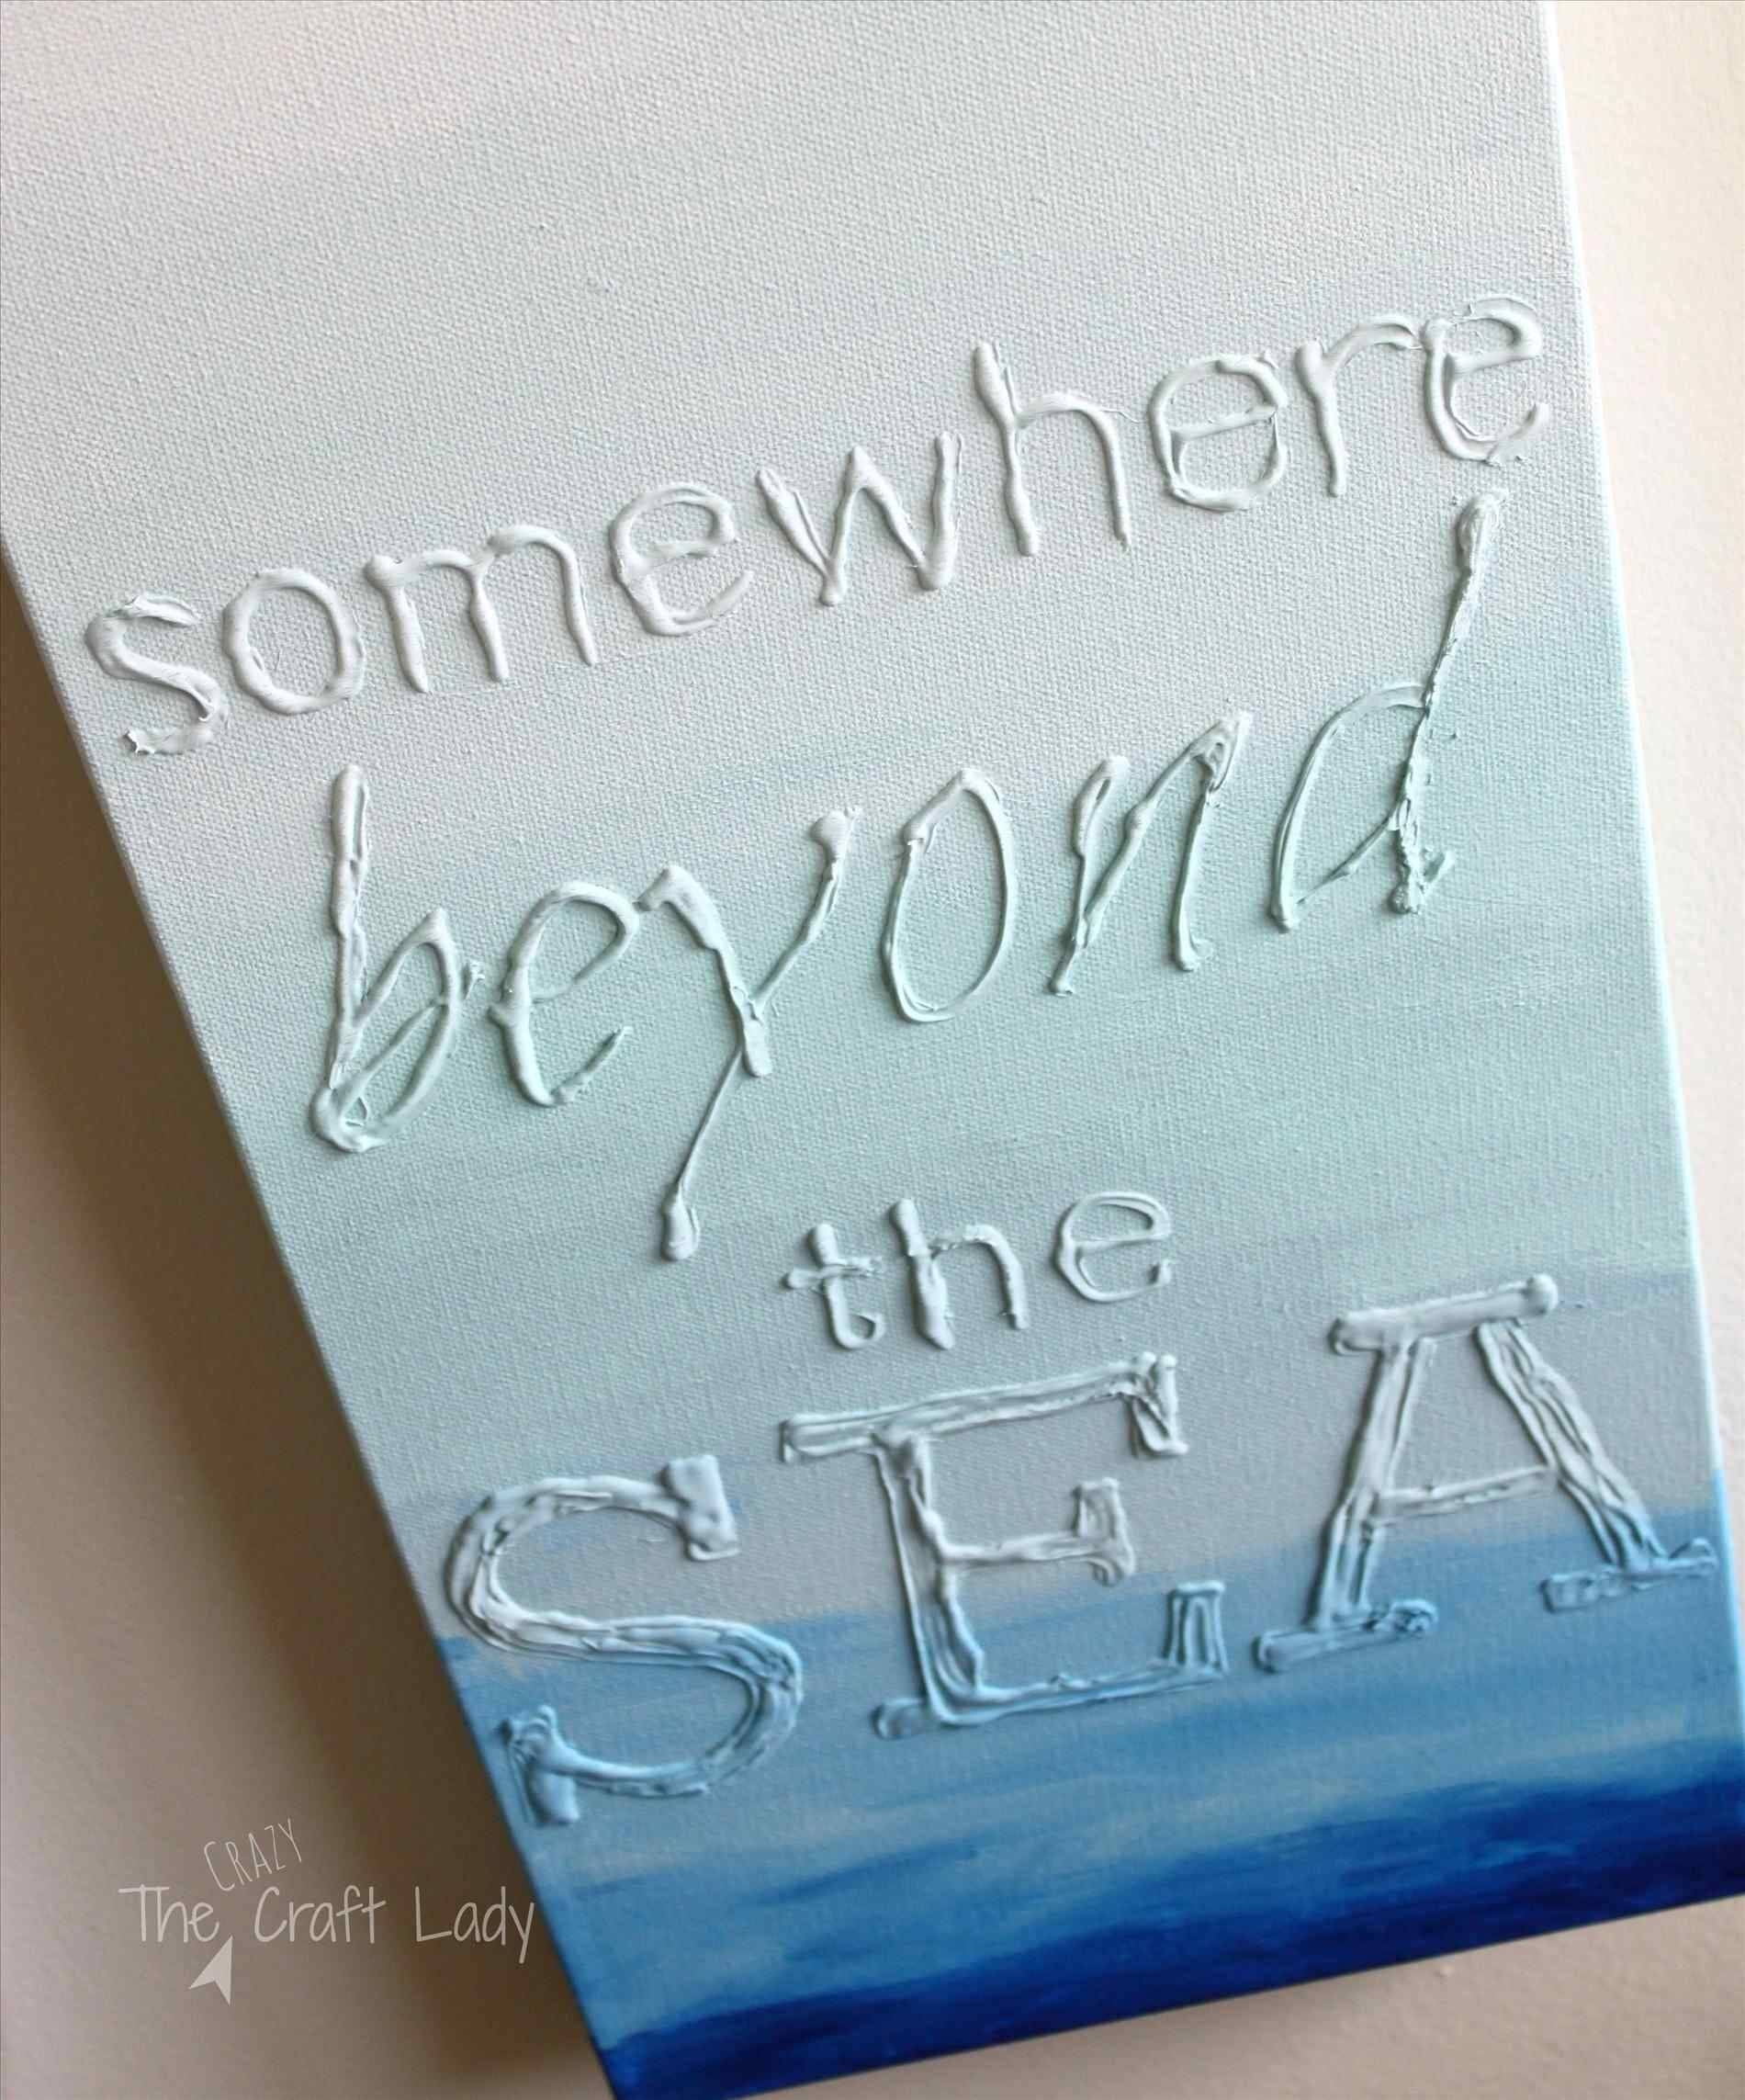 Quotes Diy Art Designs Awesome Diy Canvas Quote Youtube Diy Canvas Throughout Most Current Diy Canvas Wall Art Quotes (View 15 of 20)